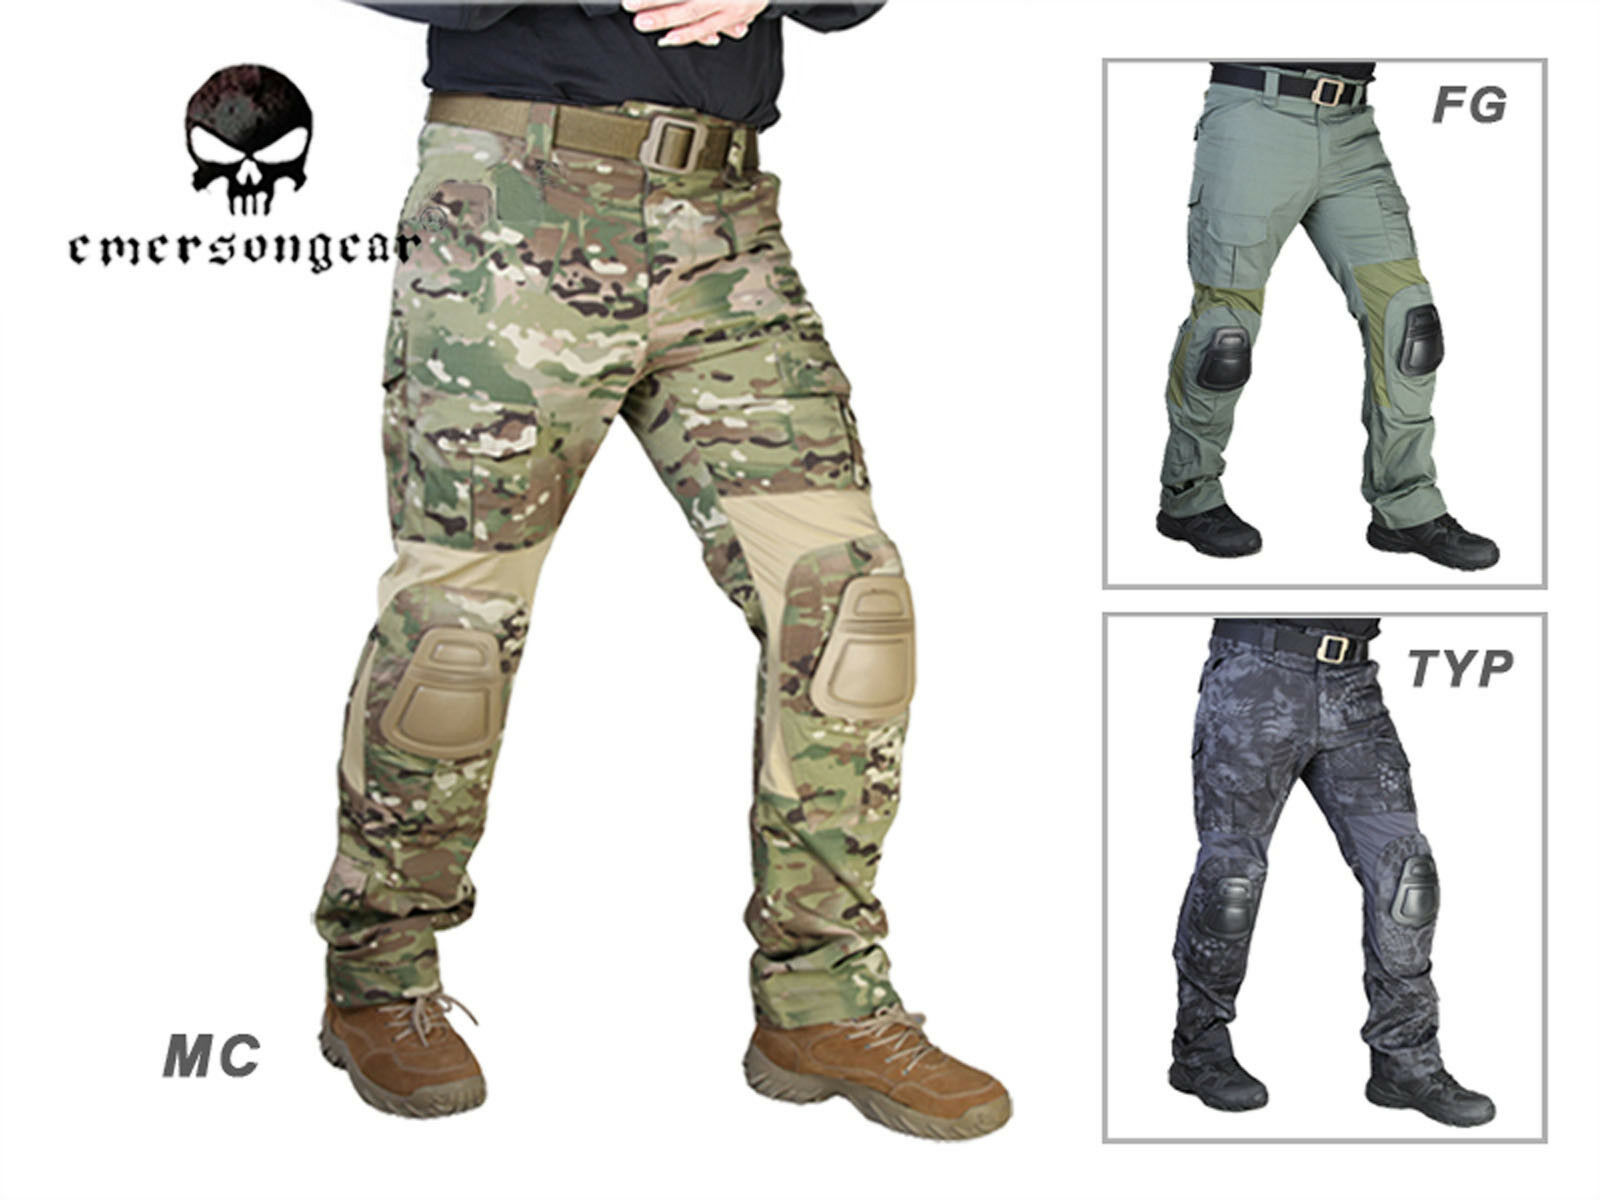 Emerson G2 Tactical Pants with Knee Pads Airsoft Hunting Trousers EM7038